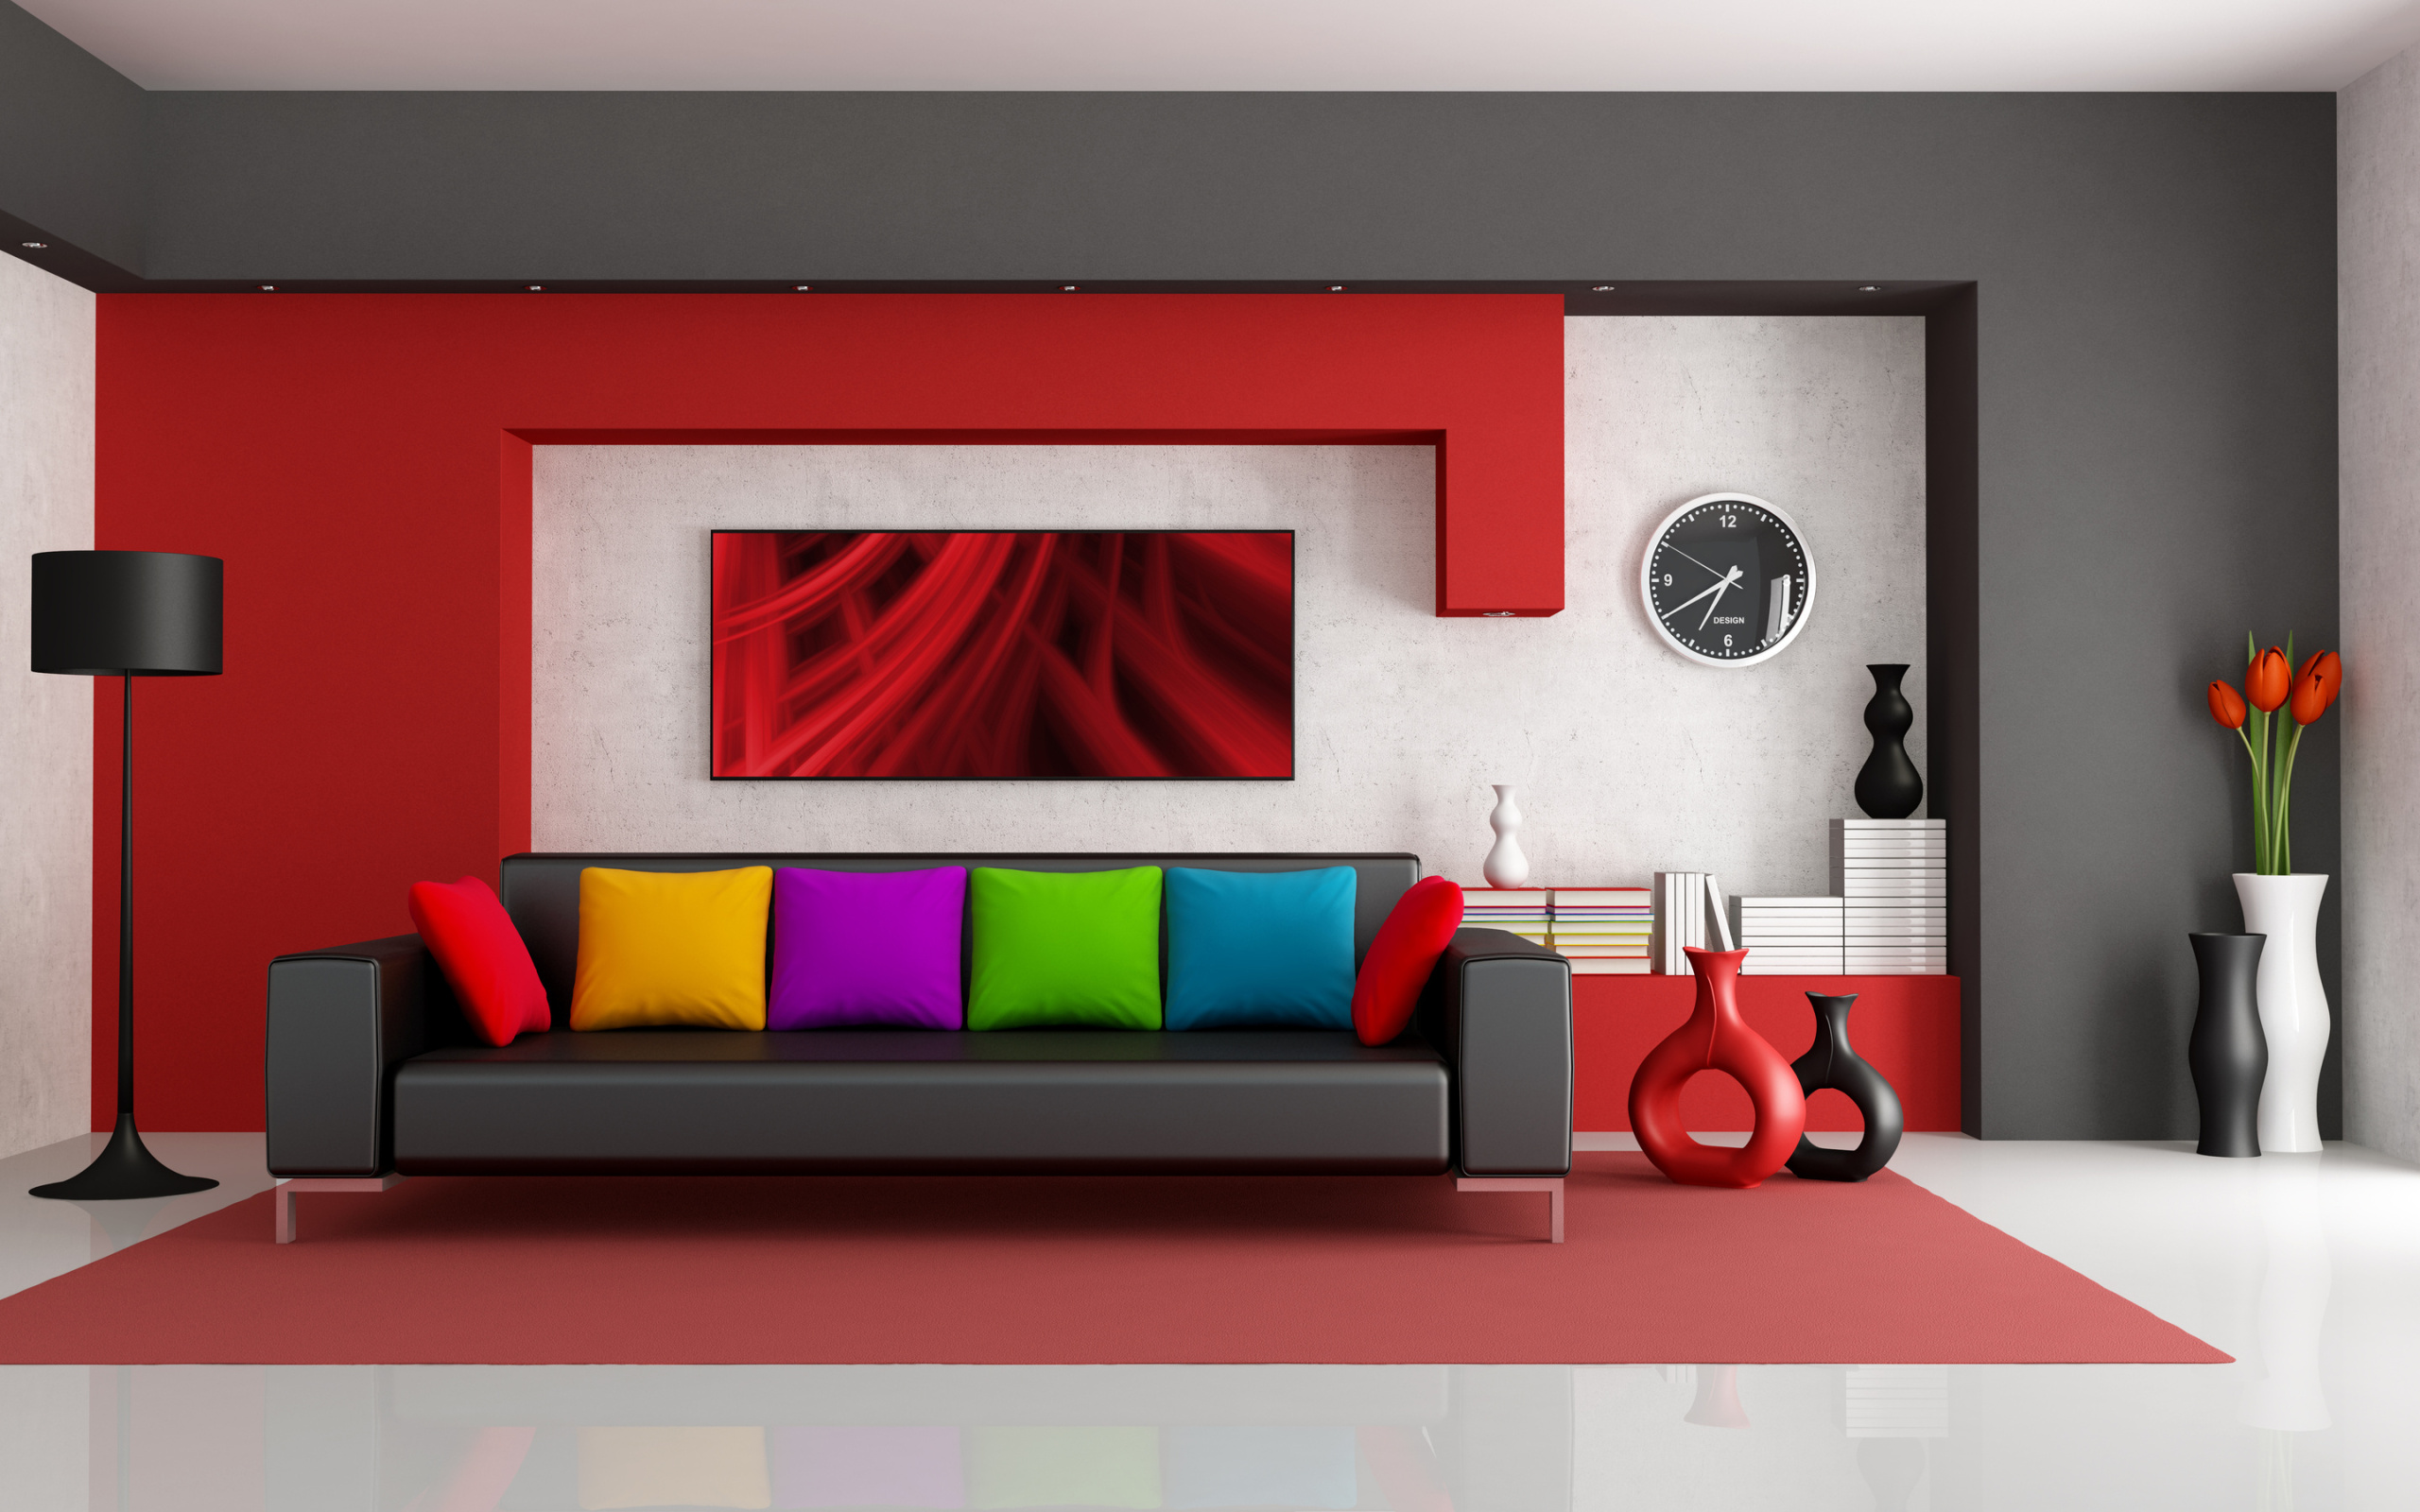 Interior design wallpapers movie hd wallpapers for Interior design wallpapers